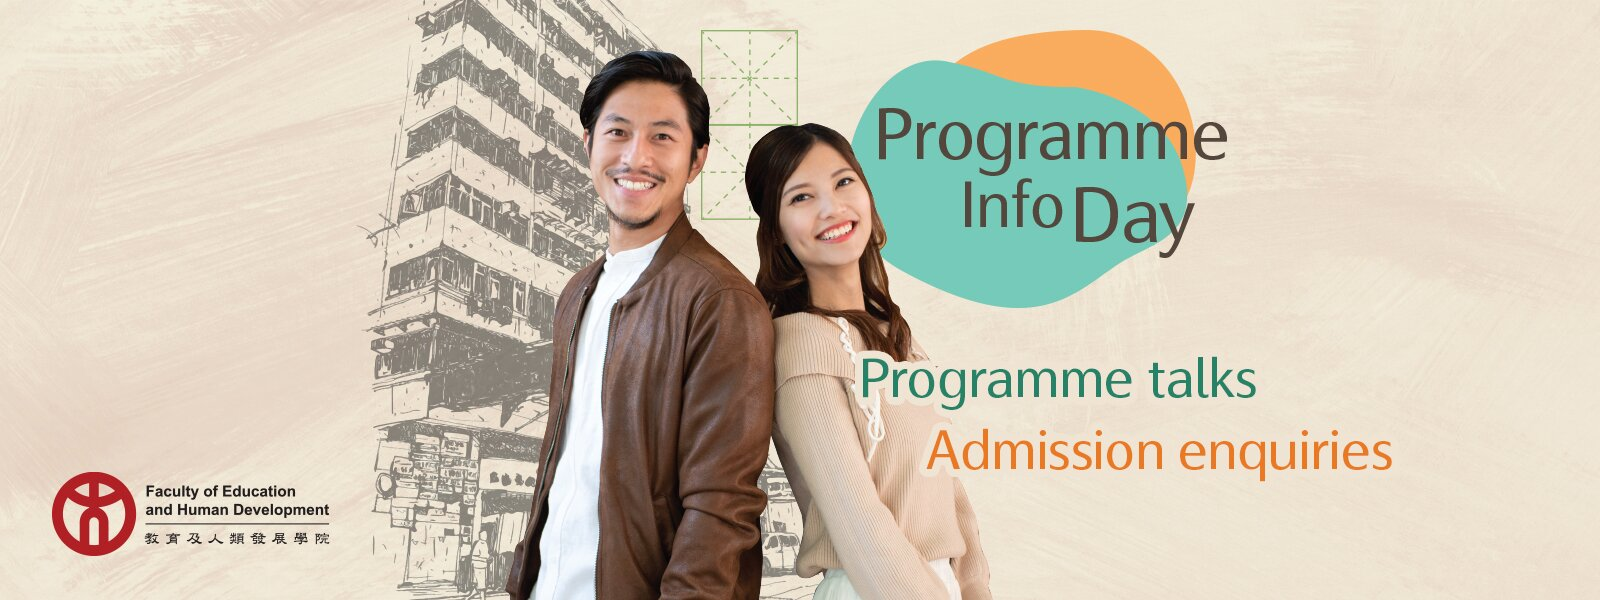 FEHD Information Day